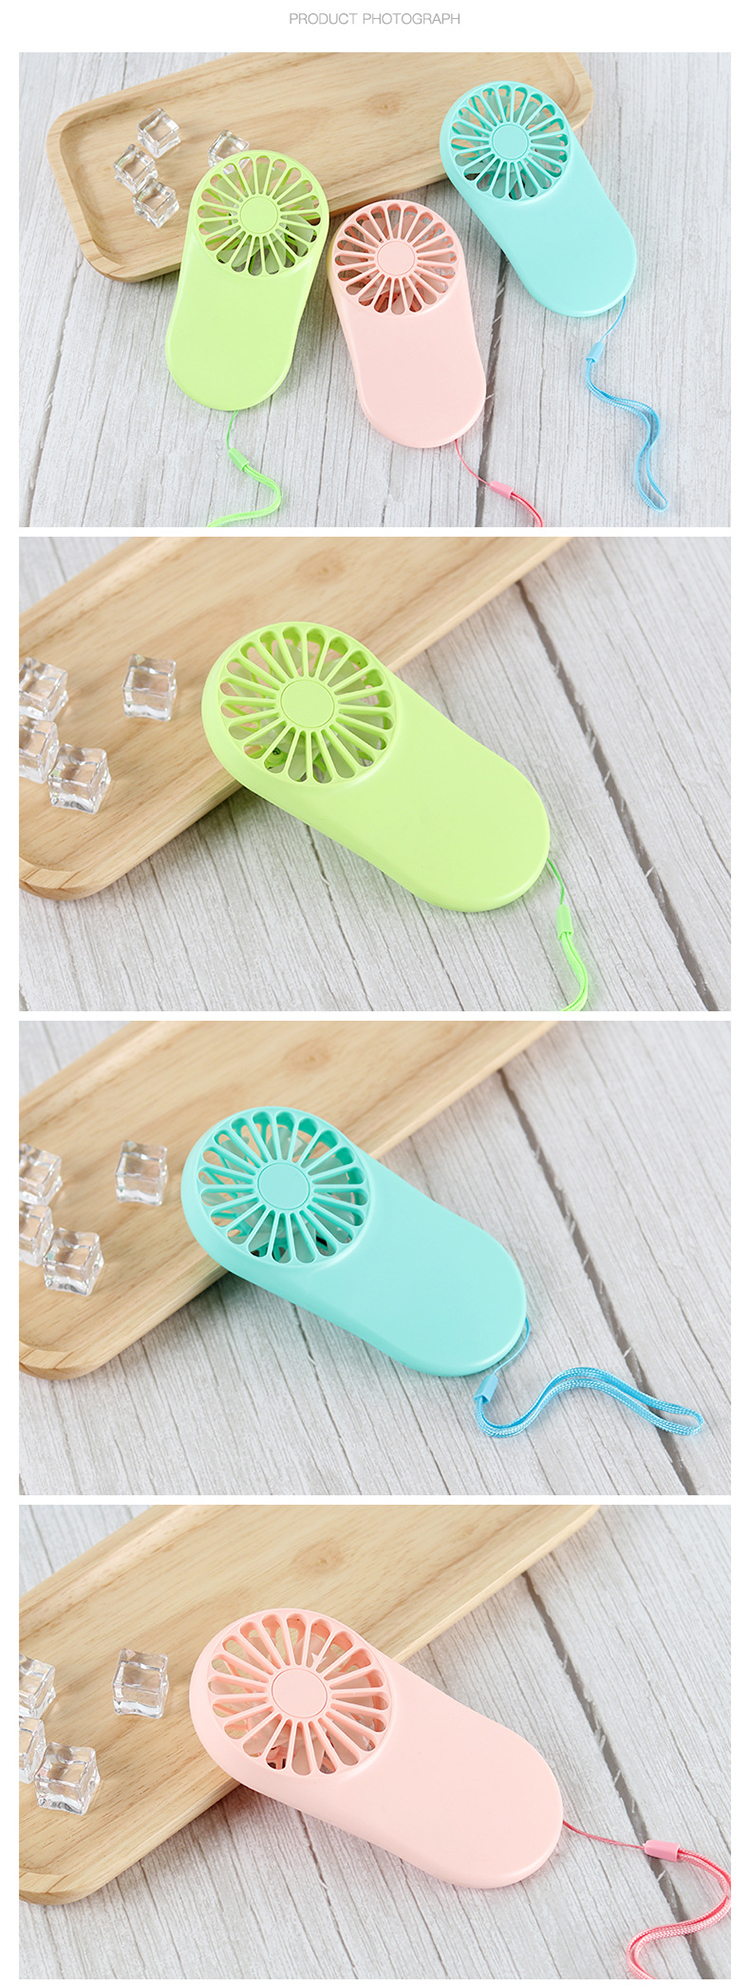 New pocket fan usb charging mini handheld fan student outdoor with lanyard